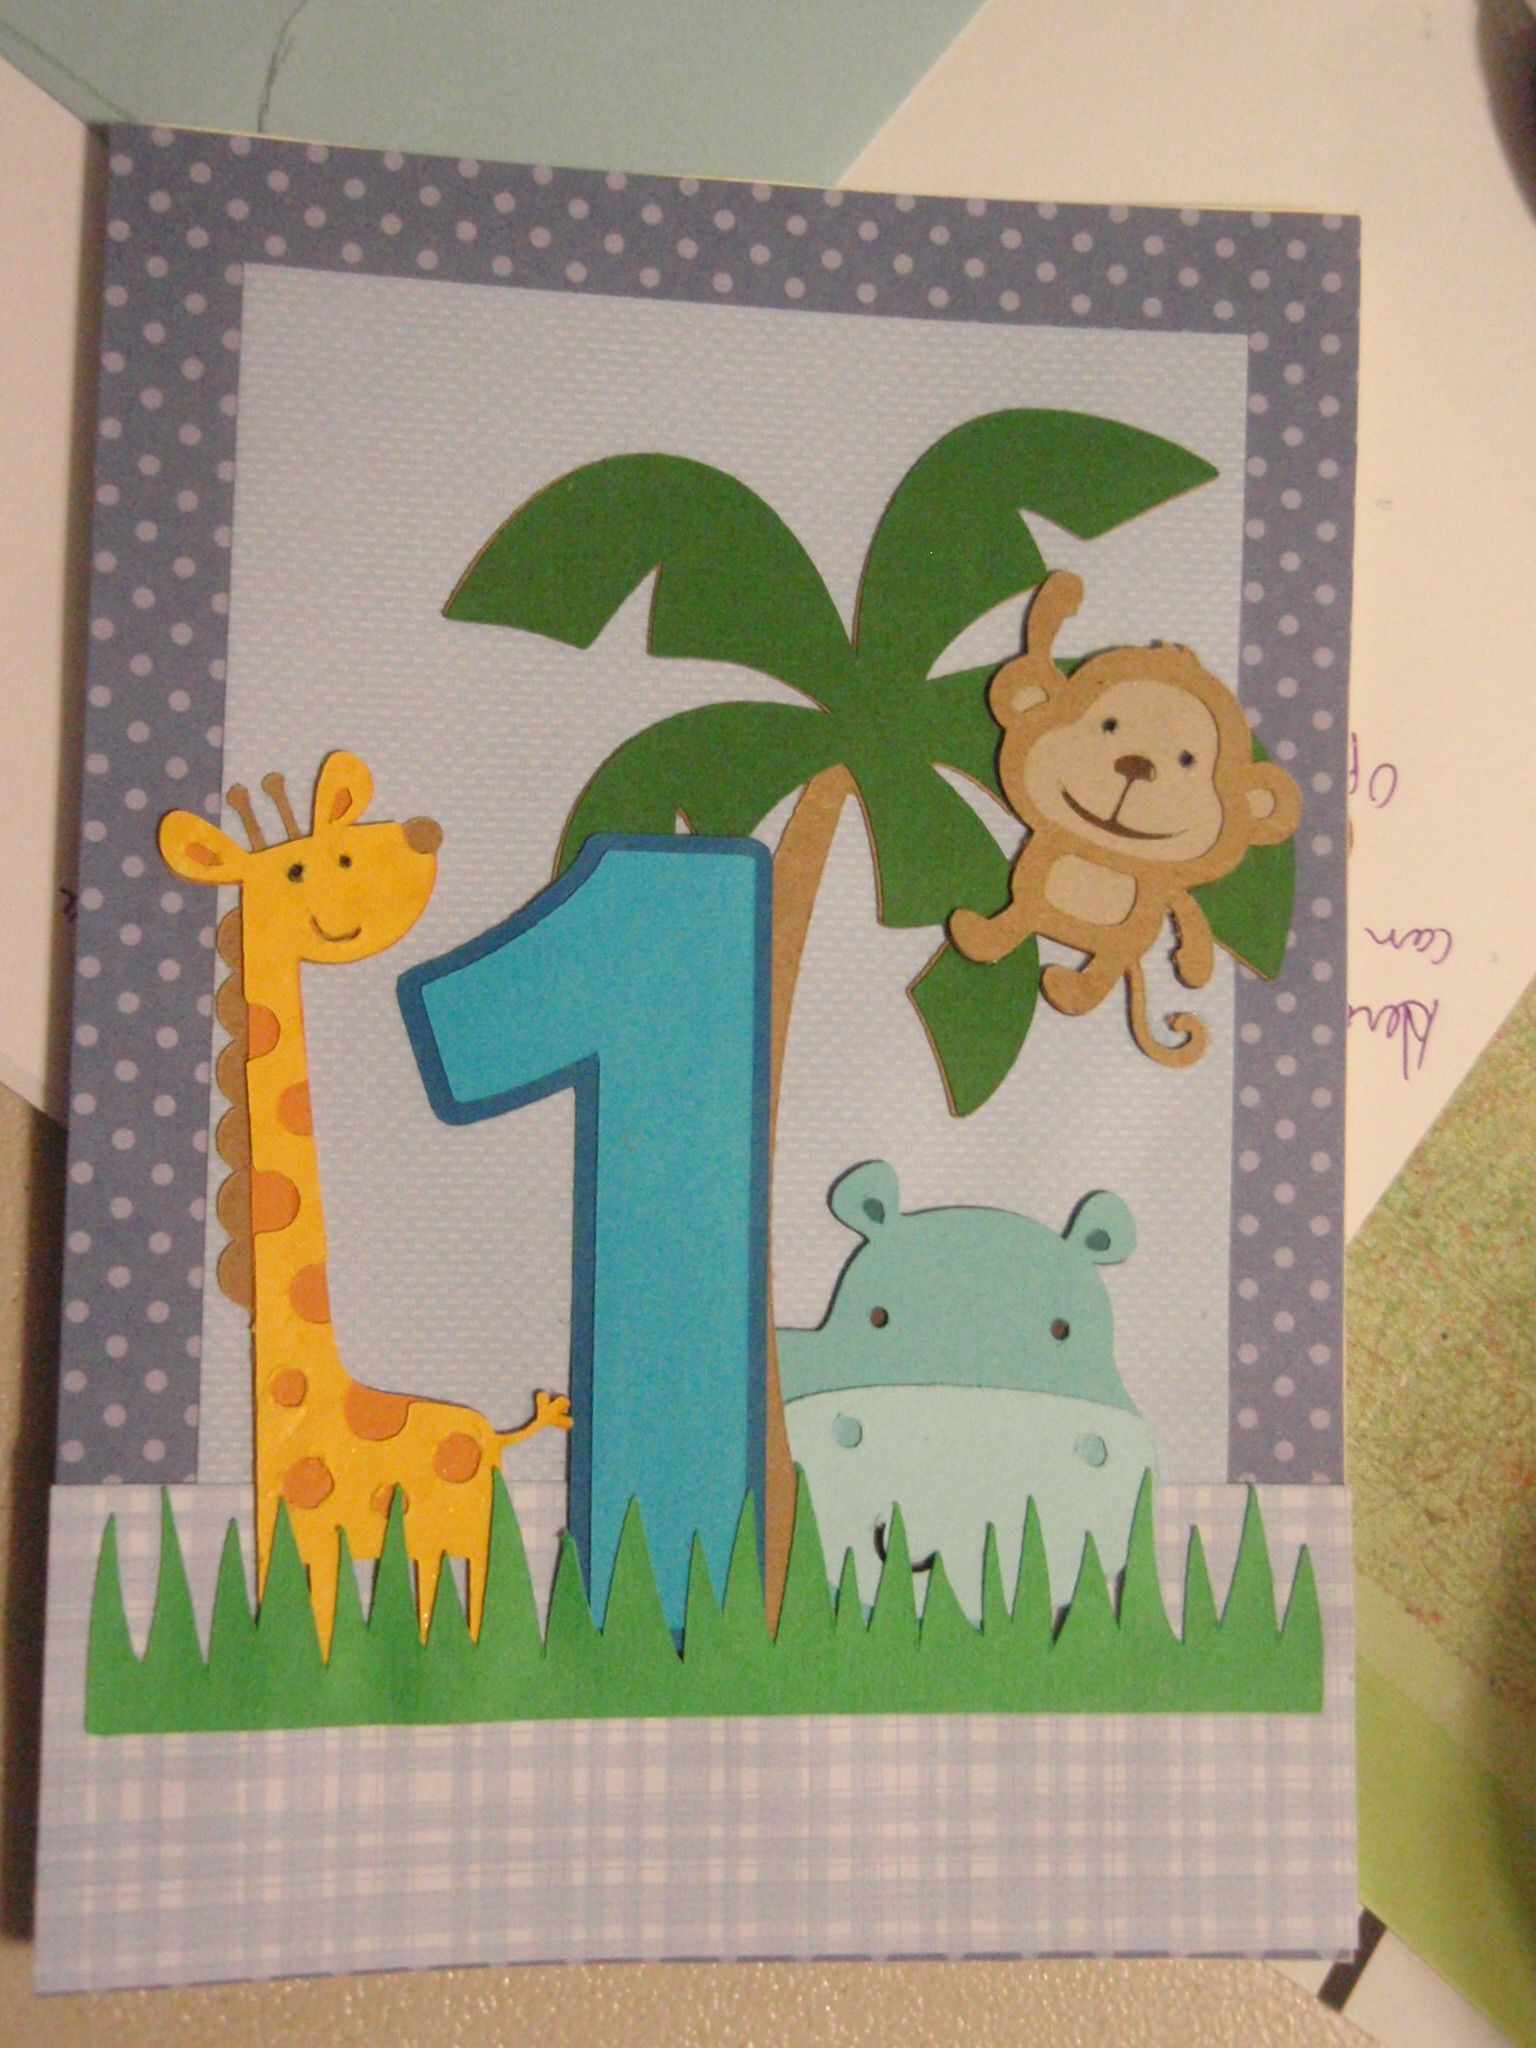 Bday Card For 1 Year Old